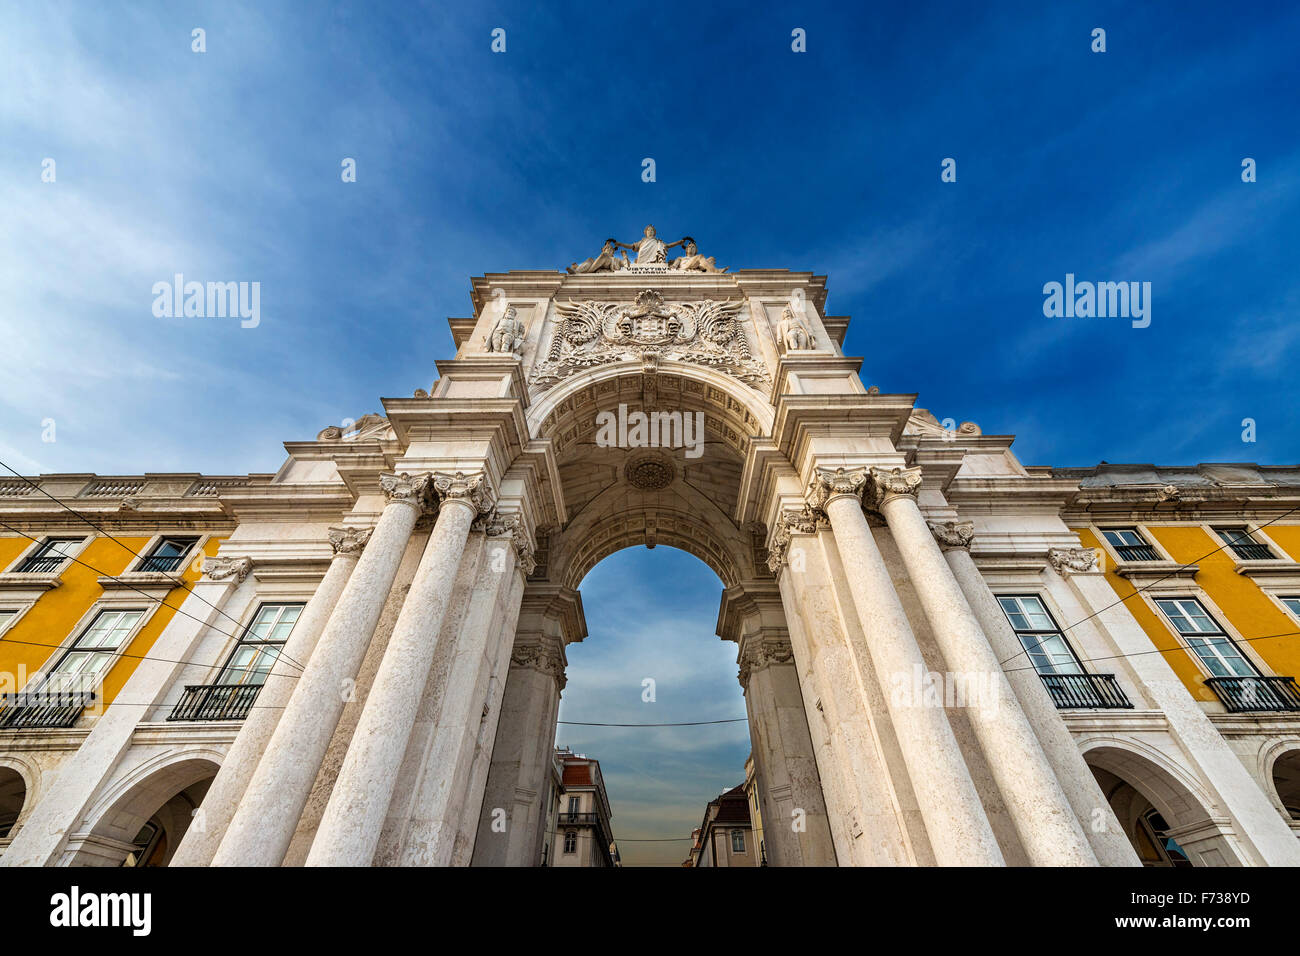 Detail of the Triumphal Arch in the Praca do Comercio in Lisbon, Portugal - Stock Image